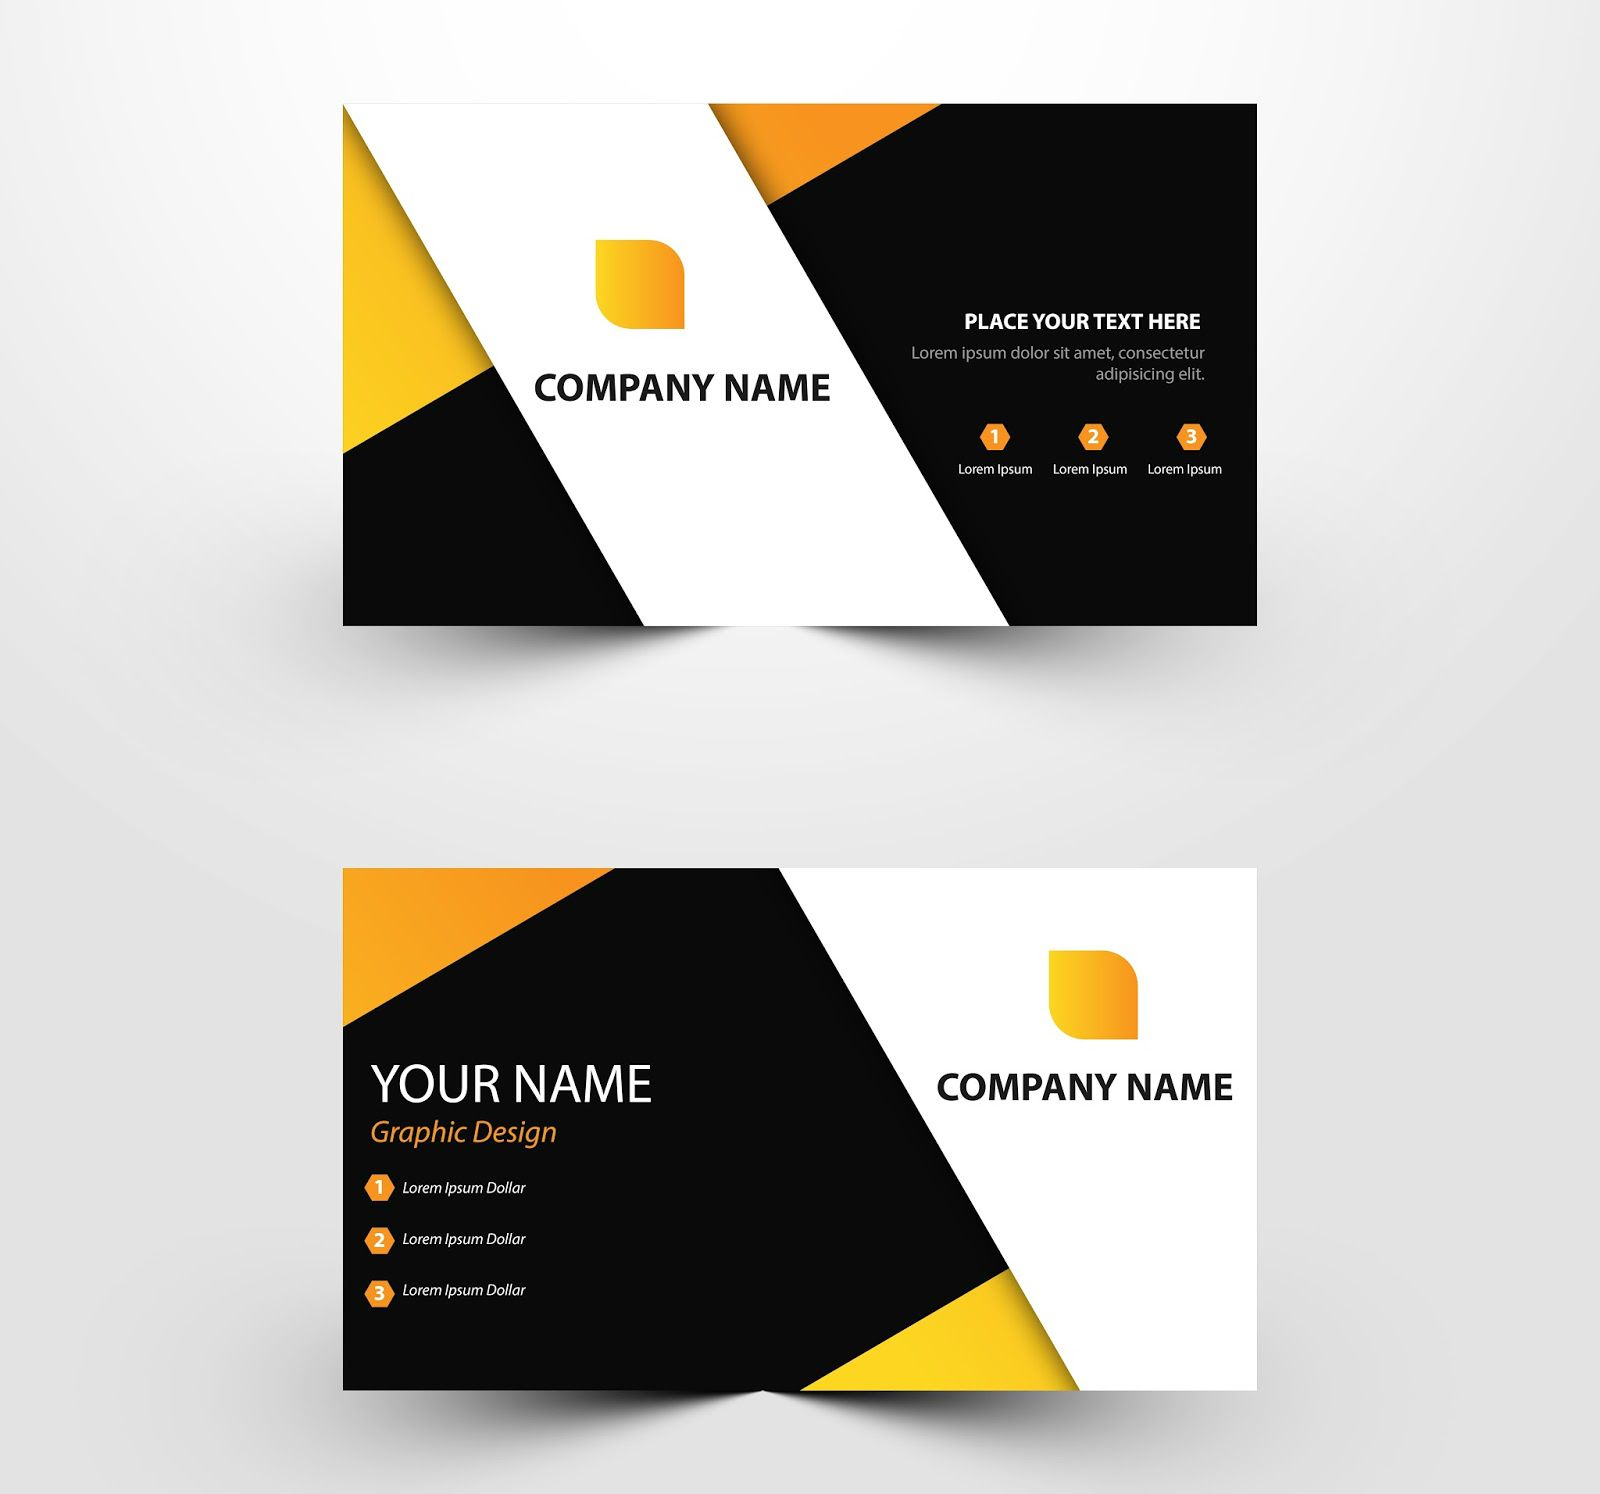 009 Fearsome Download Busines Card Template Concept  For Microsoft Publisher Adobe Illustrator Visiting PsdFull